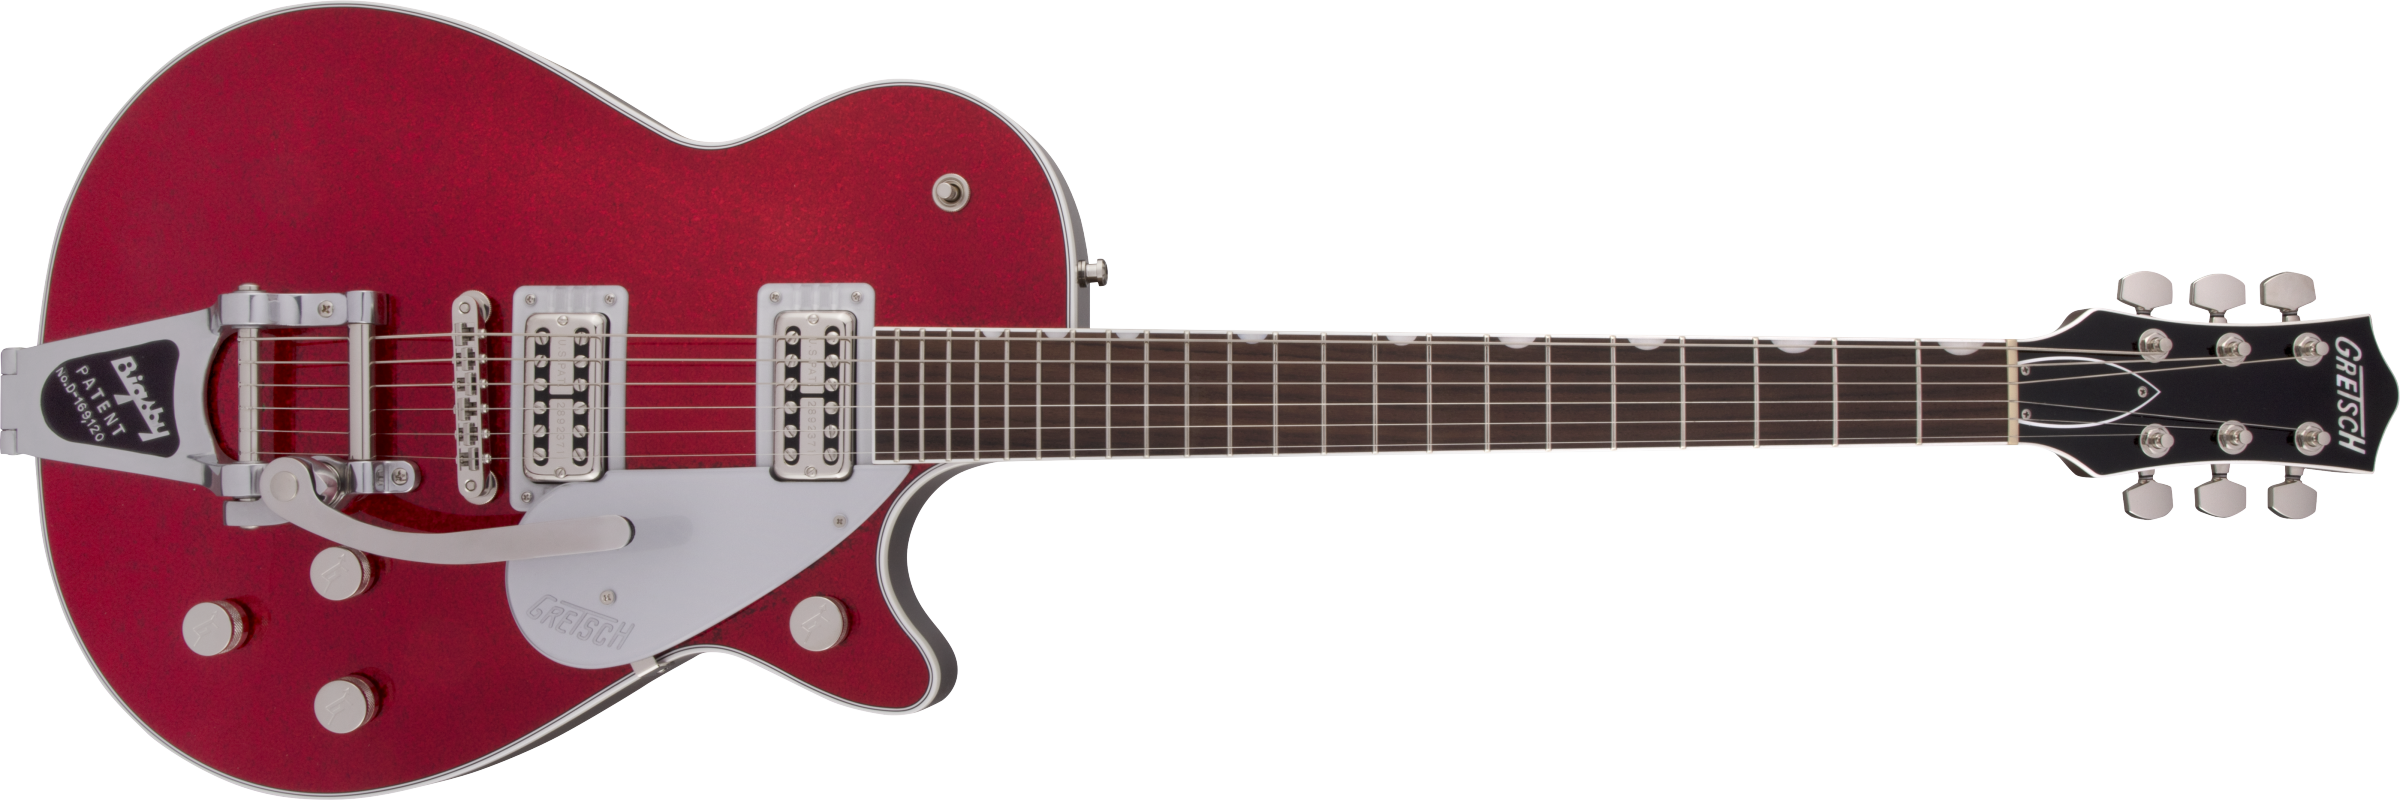 GRETSCH-G6129T-Players-Edition-Jet-FT-with-Bigsby-Rosewood-Fingerboard-Red-Sparkle-sku-571004594